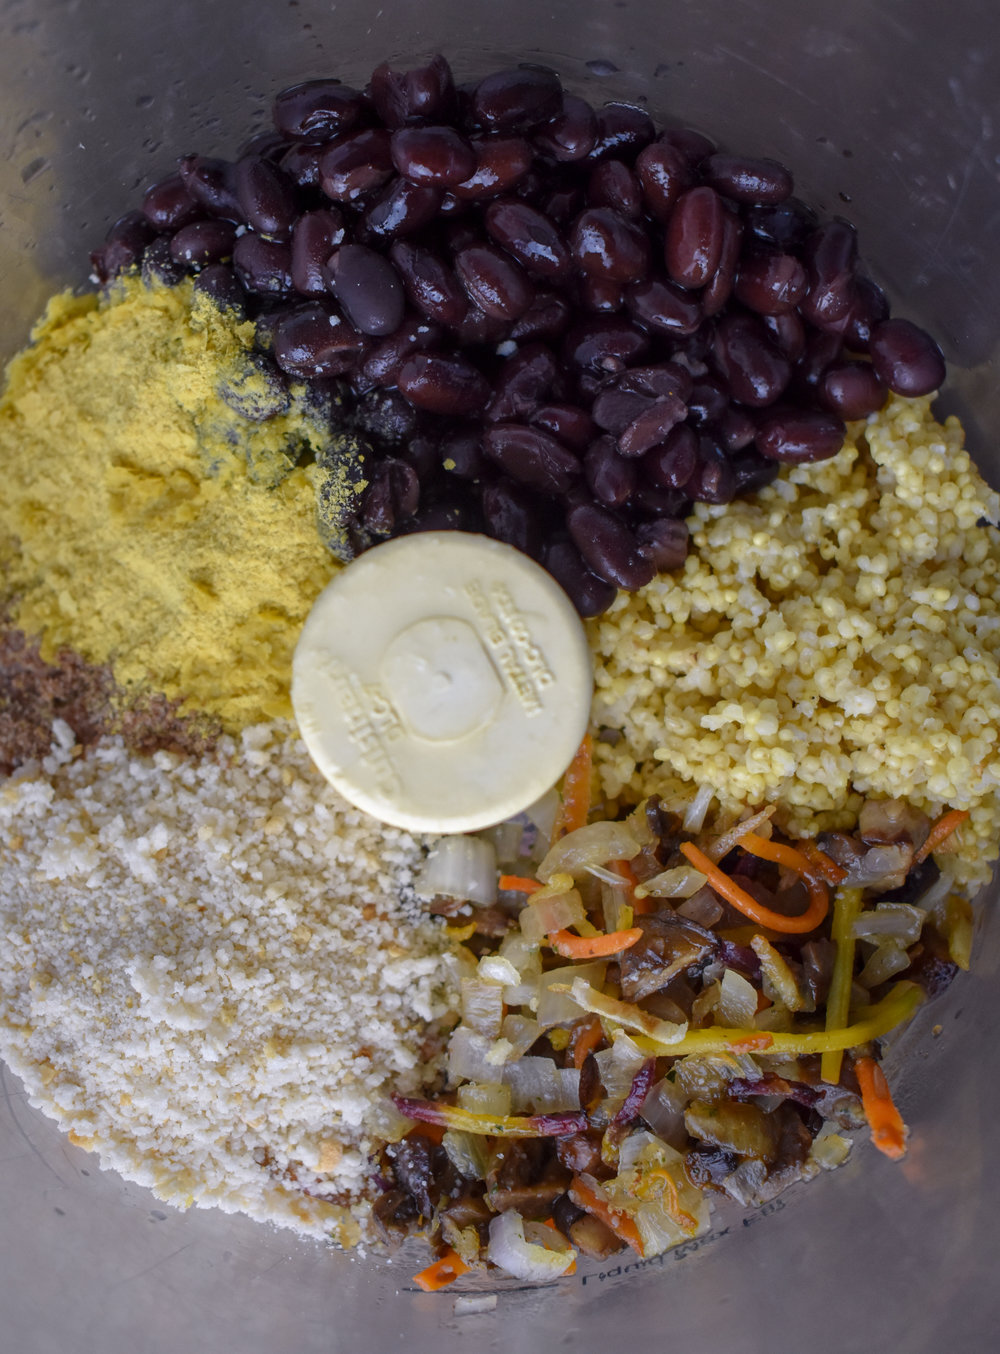 2. Place millet, black beans, mushroom mixture, breadcrumbs, nutritional yeast, spices, flaxmeal, aminos, and lemon juice into food processor. Pulse until well mixed roughly 9-10 times. The mixture should stick together very easily and leave just a tiny bit of residue on your hands.